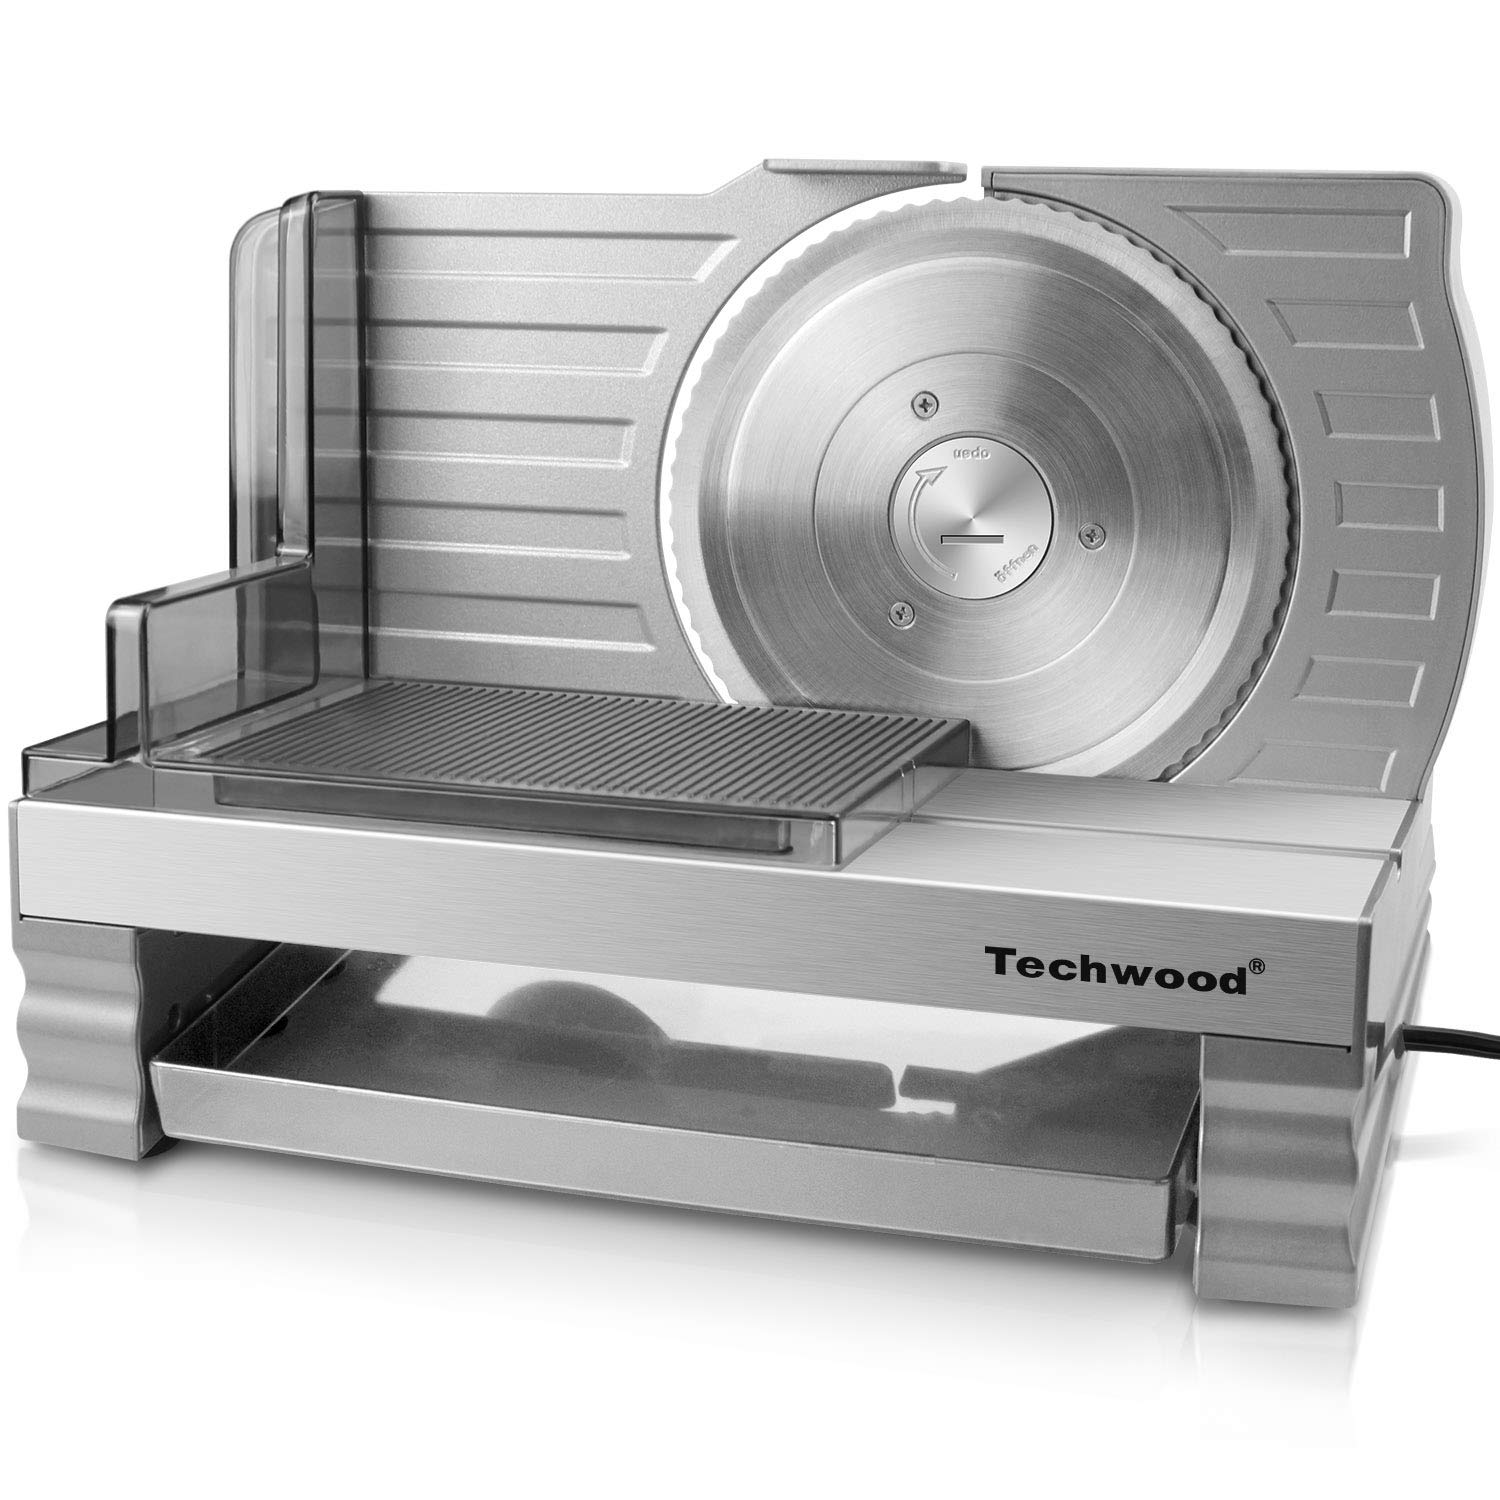 """Techwood Meat Slicer Electric Deli Food Slicer Cheese Bread Fruit Cutter 6.7"""" Removable Blade, Aluminum Alloy Track Platform, Adjustable Knob for Thickness, Food Tray& Pusher, Commercial& Home Use"""